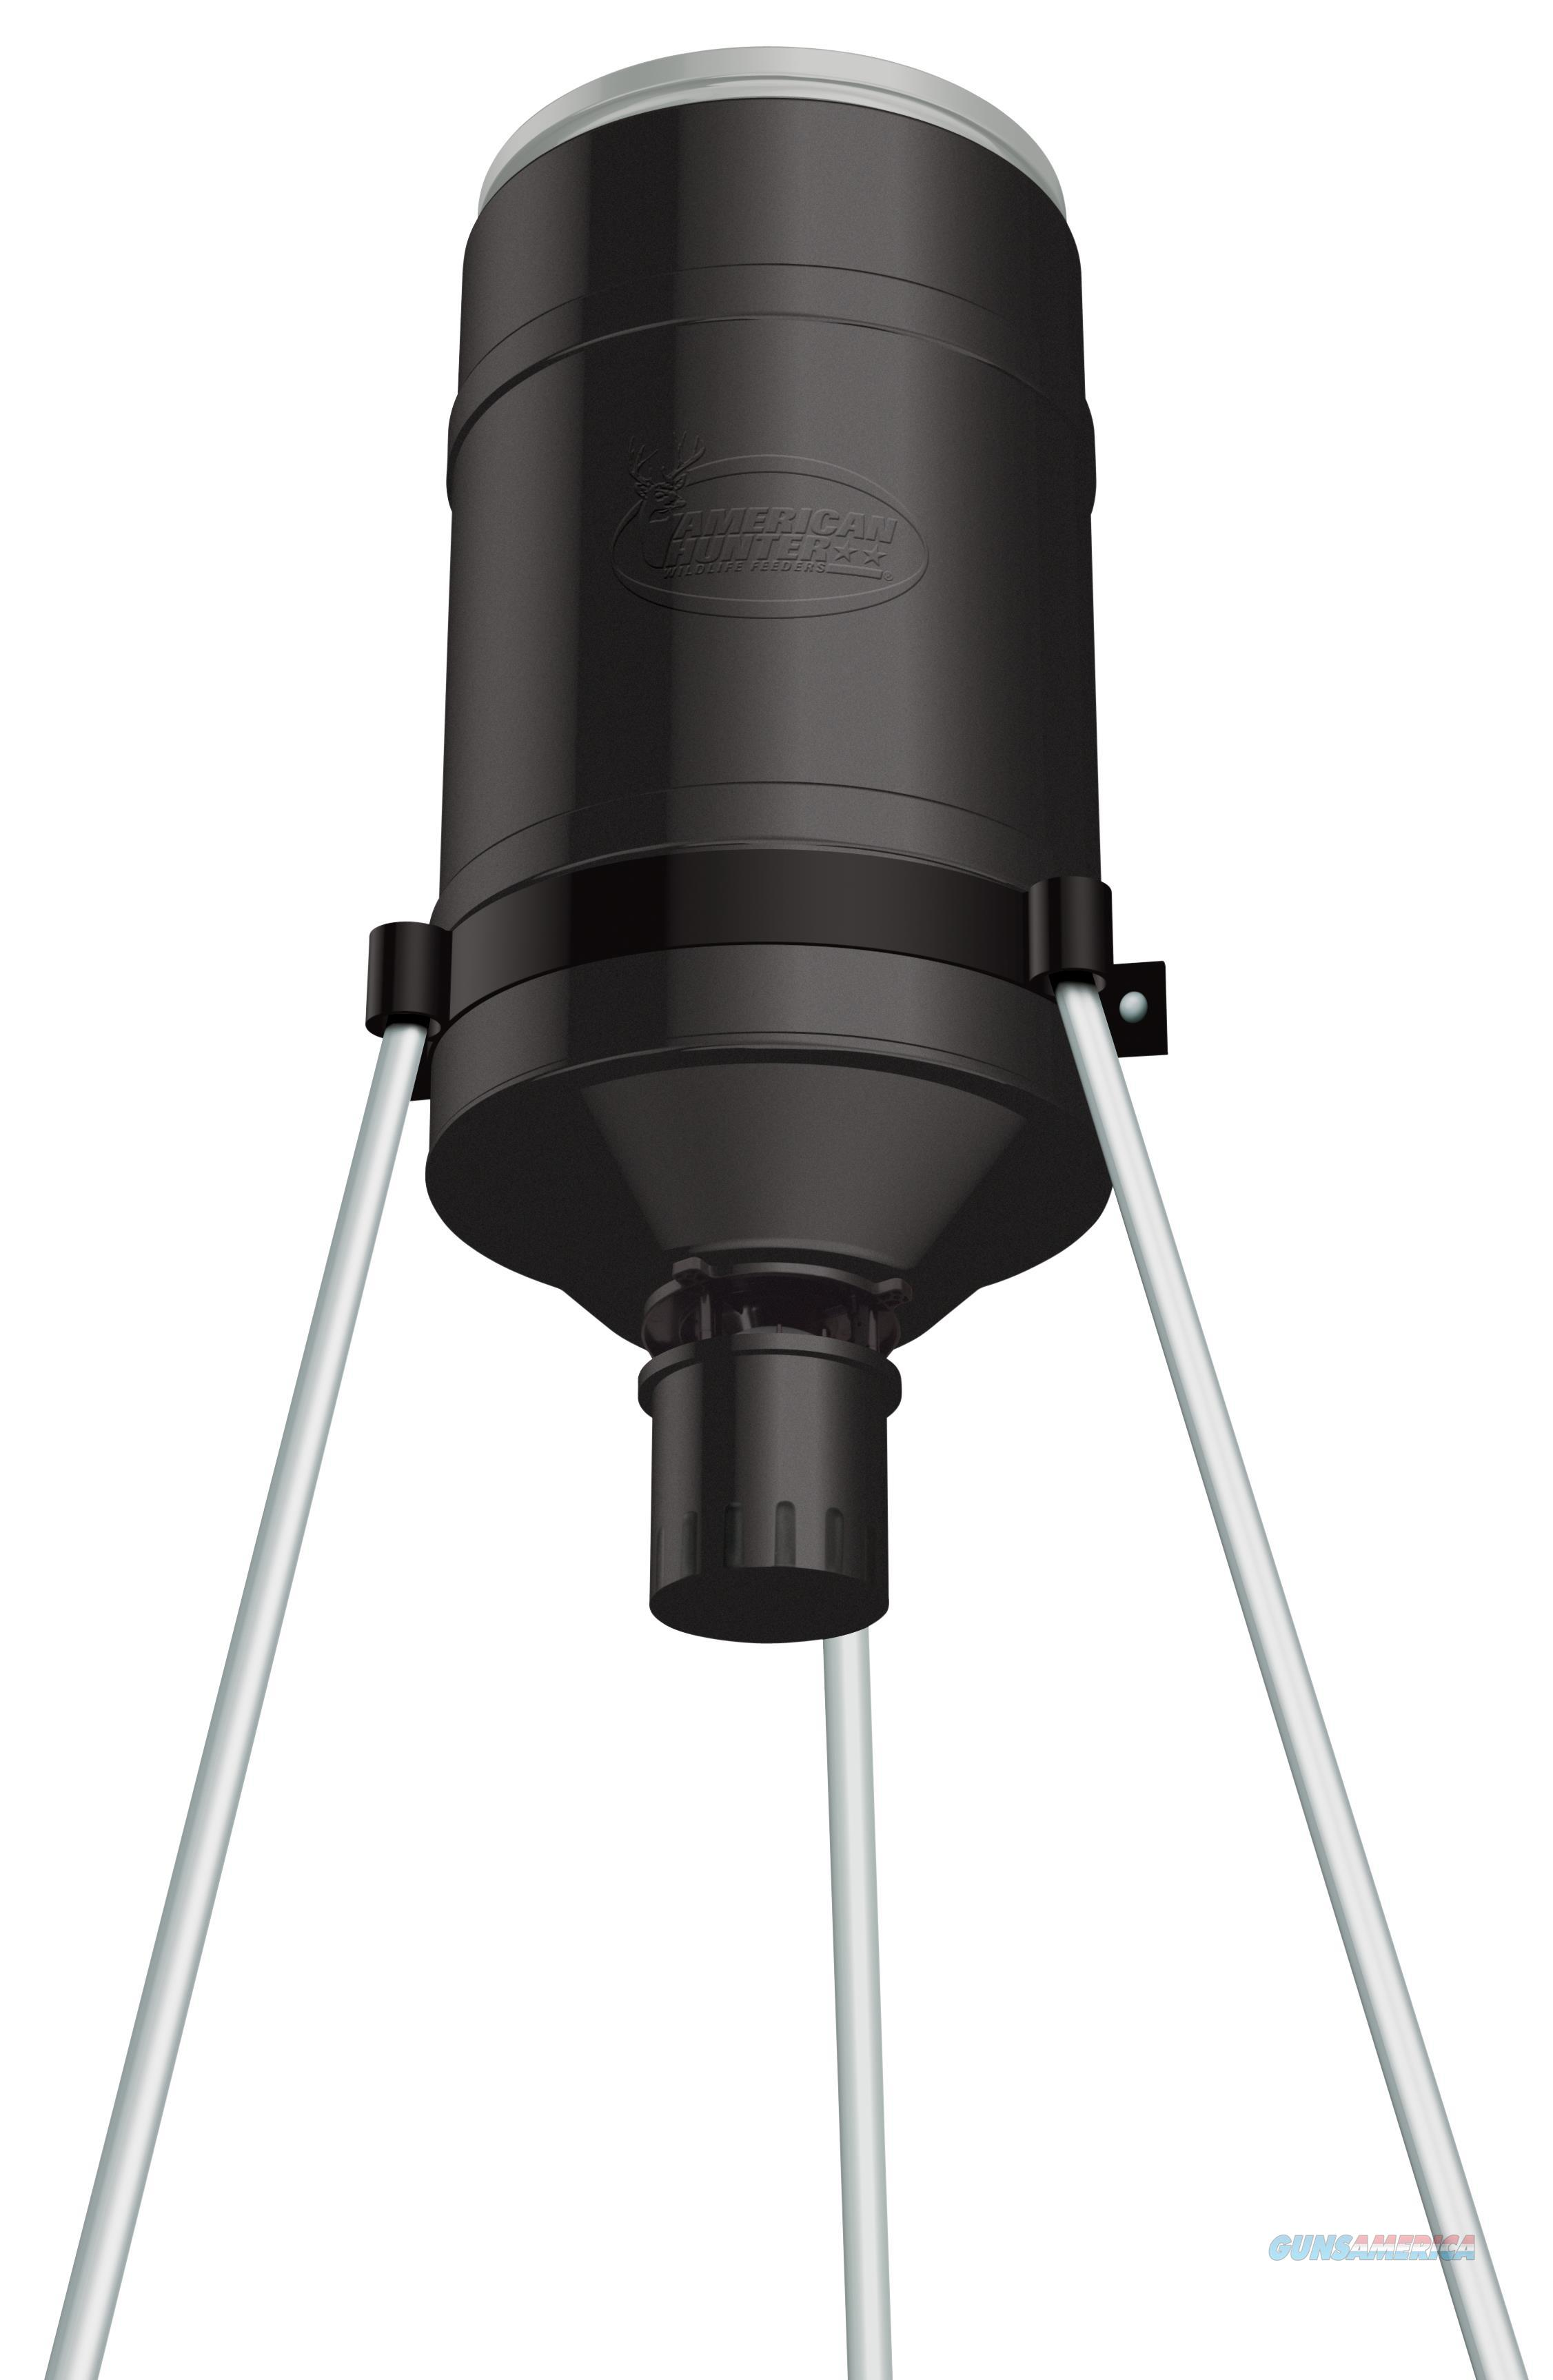 Gsm 225# Tripod Feeder W/ Dig. Motor 225RDE  Non-Guns > Hunting Clothing and Equipment > Game Feed/Locators/Trackers